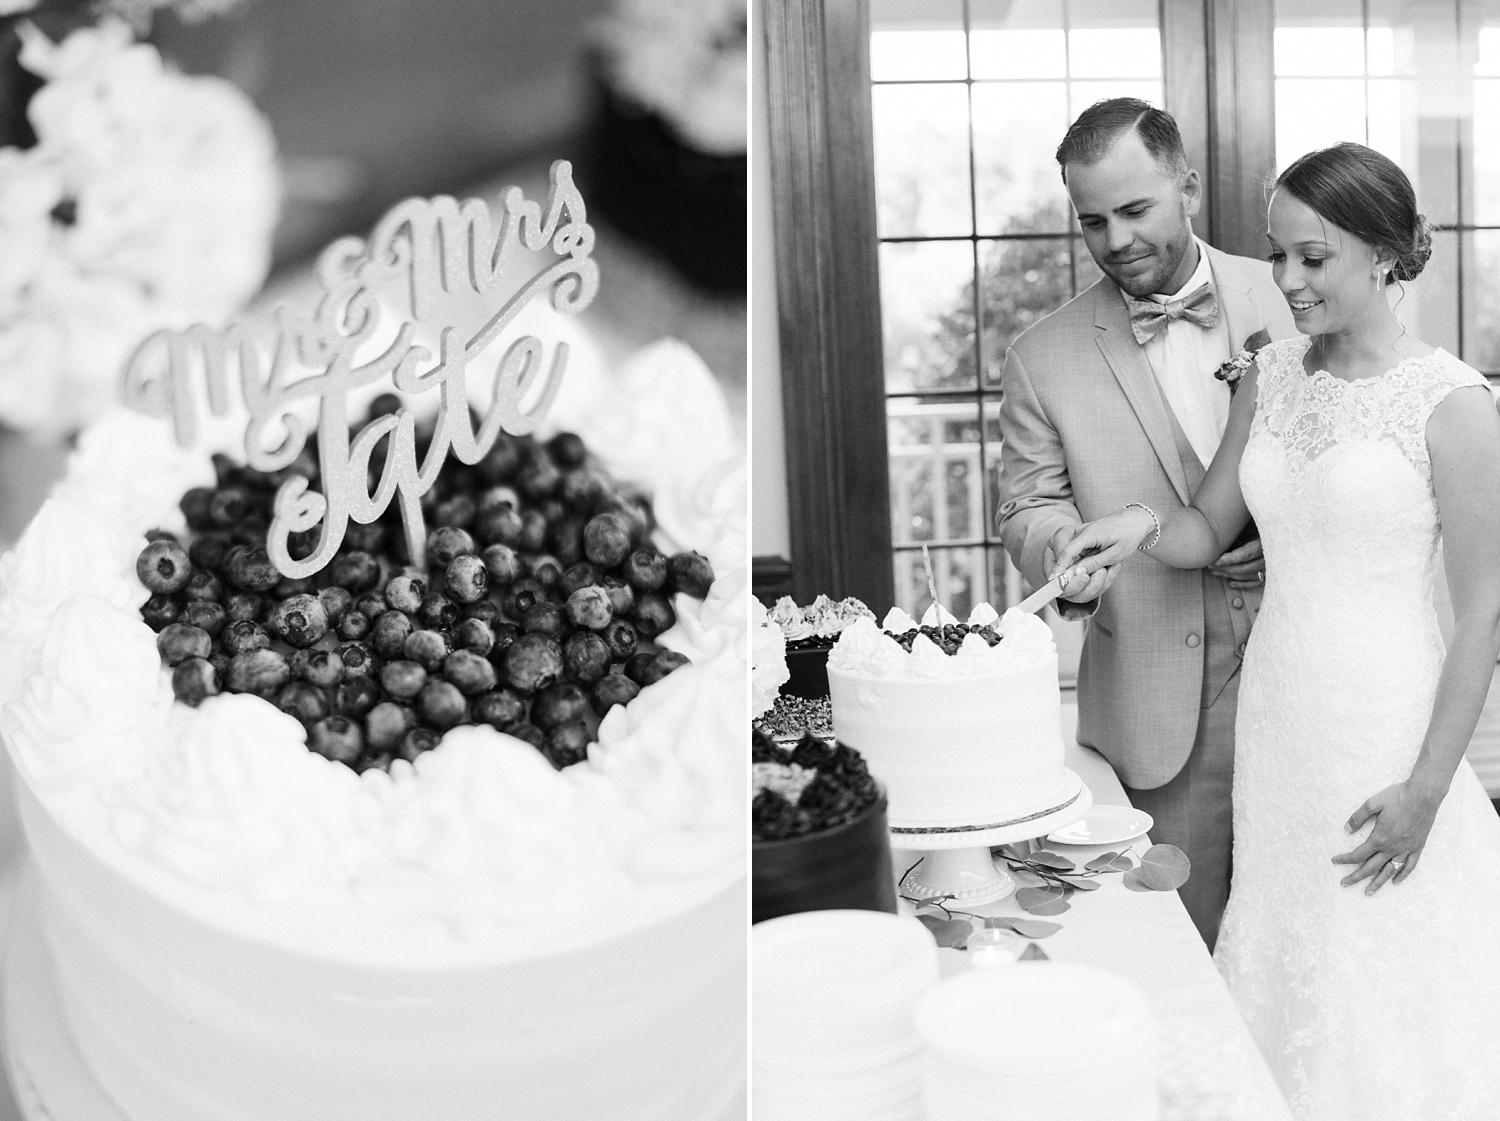 bride and groom cut the wedding cake at their reception